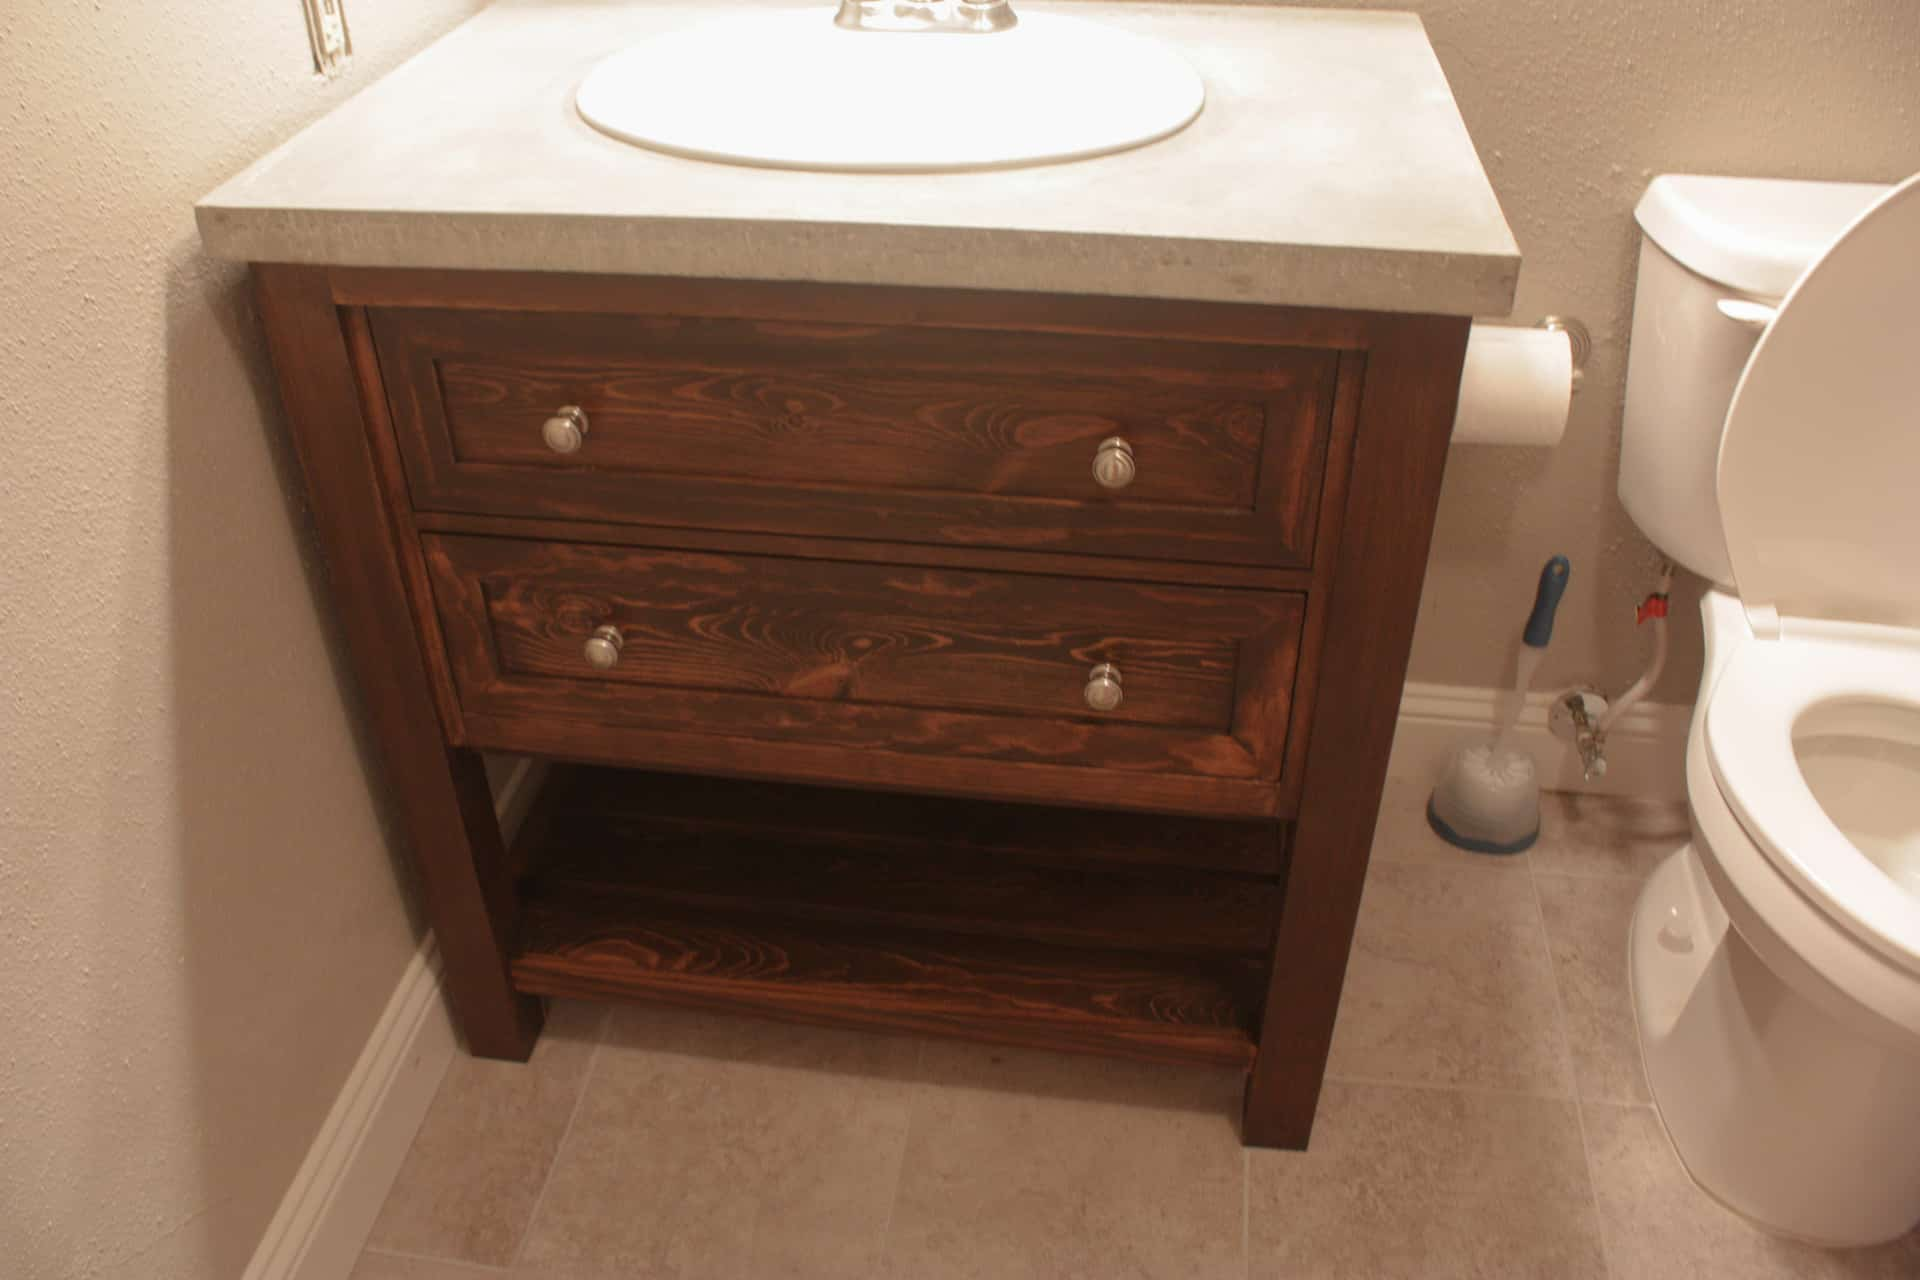 Diy Knockoff Pottery Barn Classic Single Sink Vanity